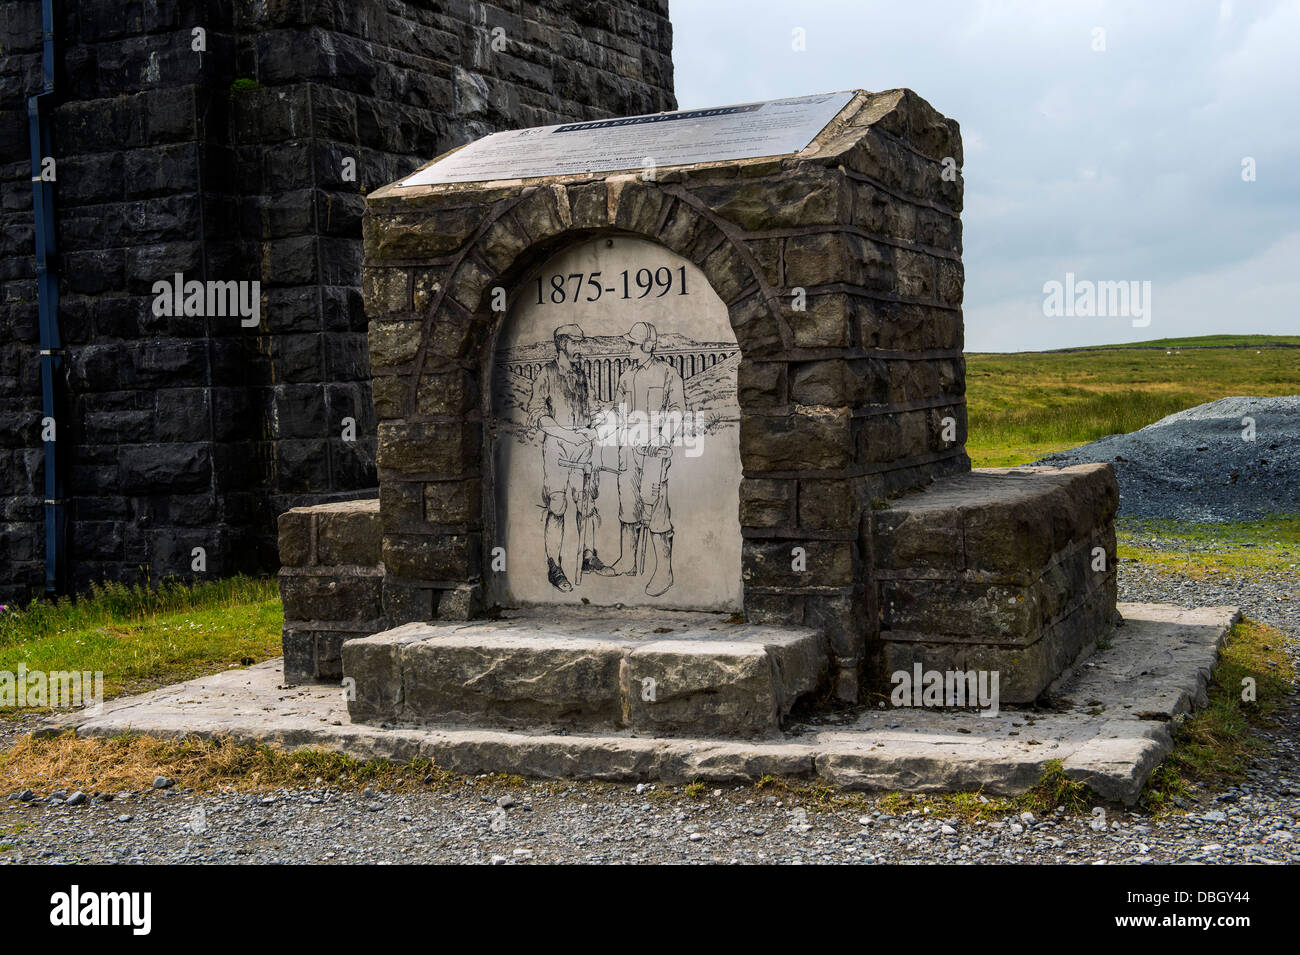 Commemorative stone to the Building of the Ribblehead Viaduct. - Stock Image